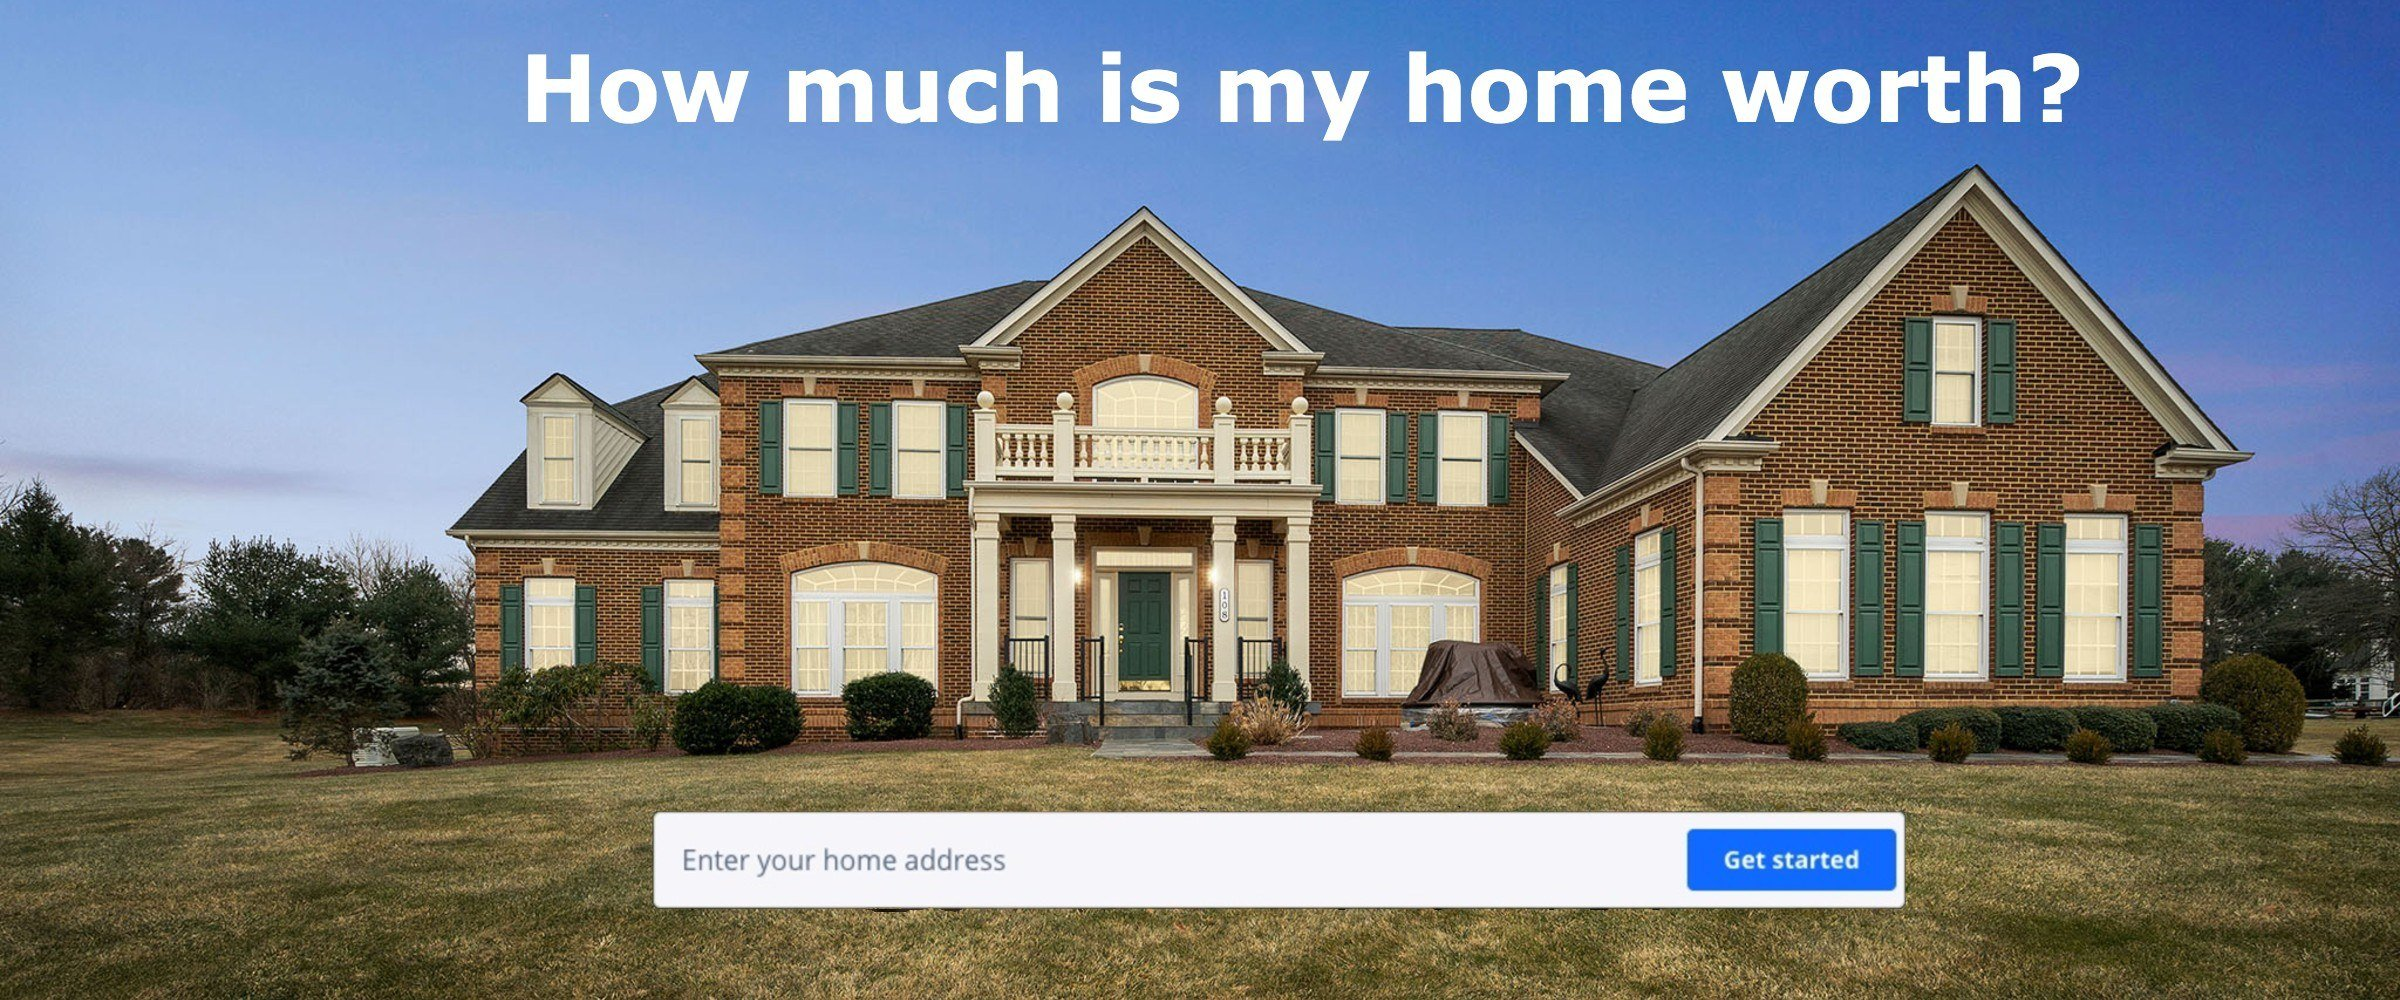 Zillow Home Value Estimate on House